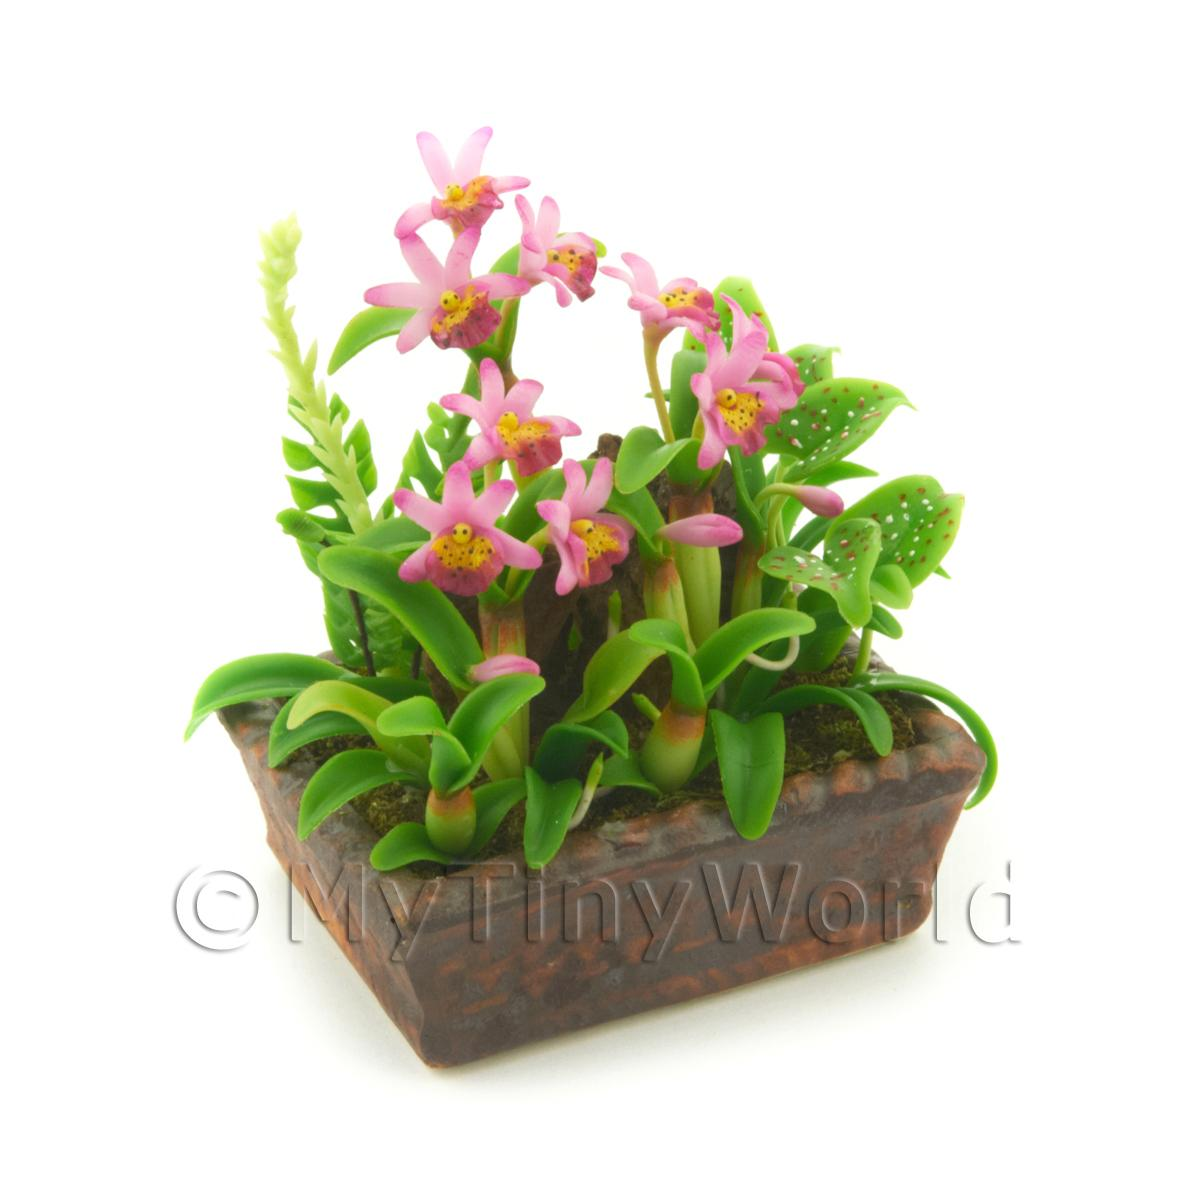 Dolls House Miniature Pink Shades Demdrobium Orchid Display